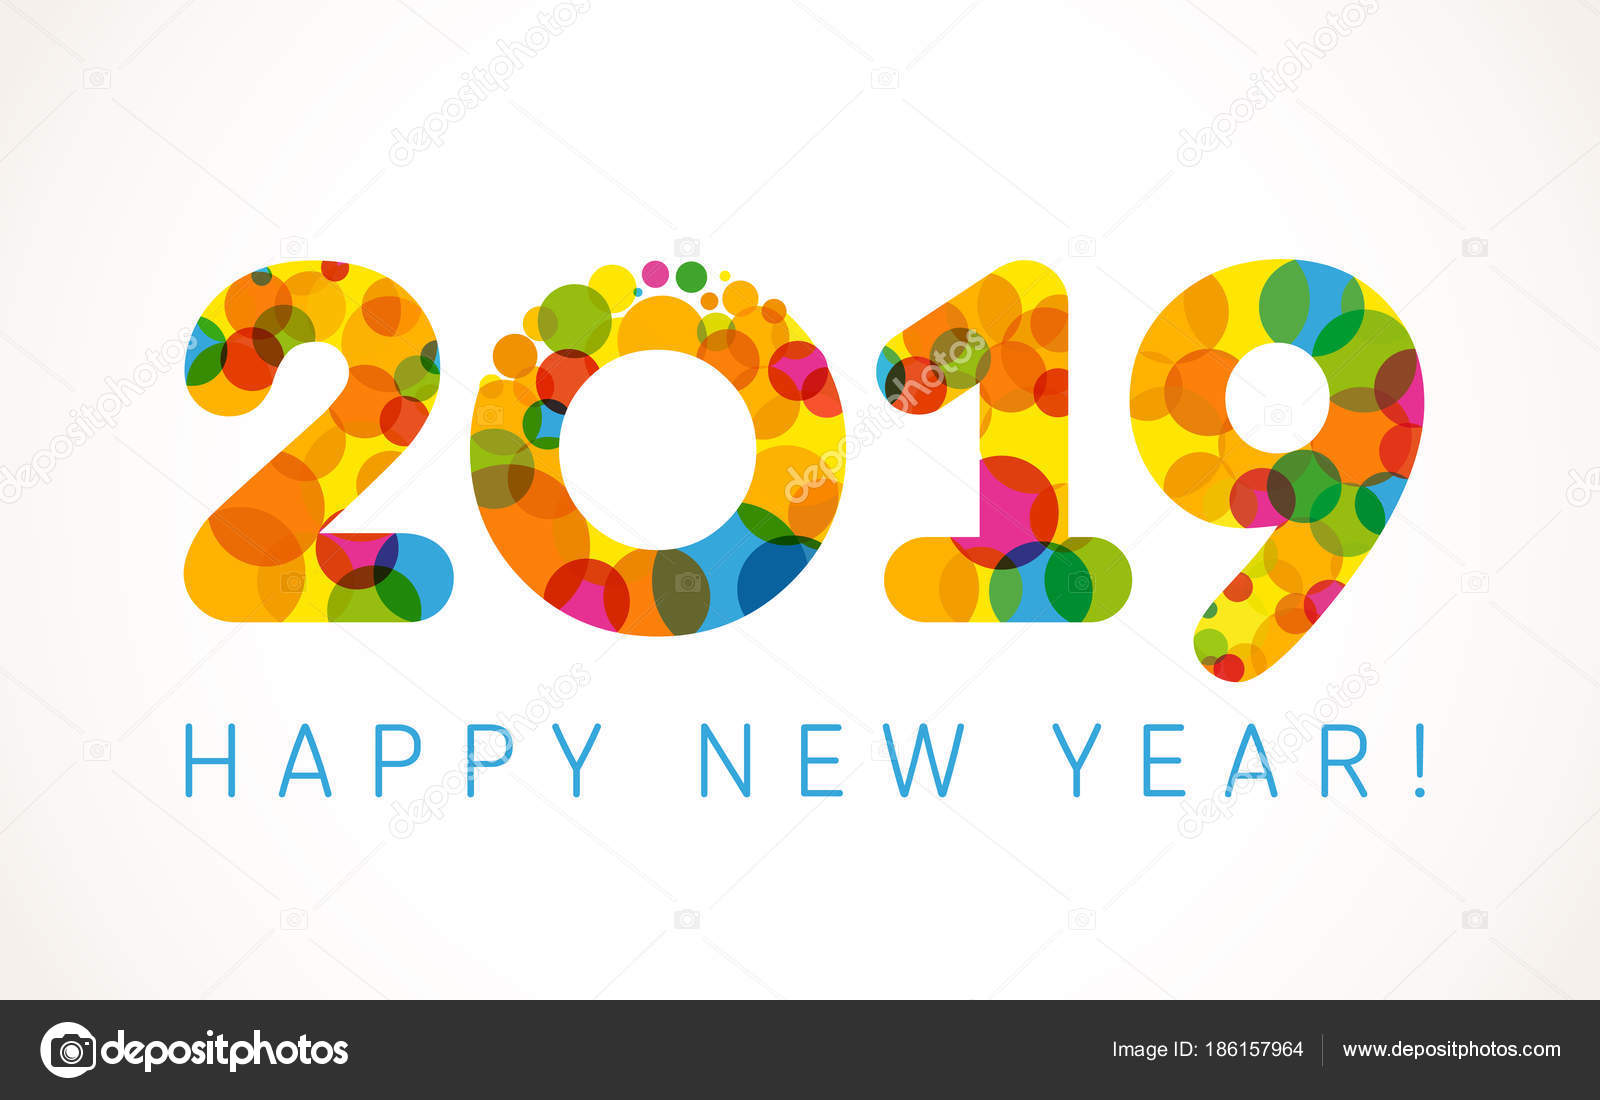 2019 happy new year greetings holidays colored background bubbles 2019 a happy new year greetings holidays colored background bubbles shape pattern funny isolated digits isolated numbers template voltagebd Images